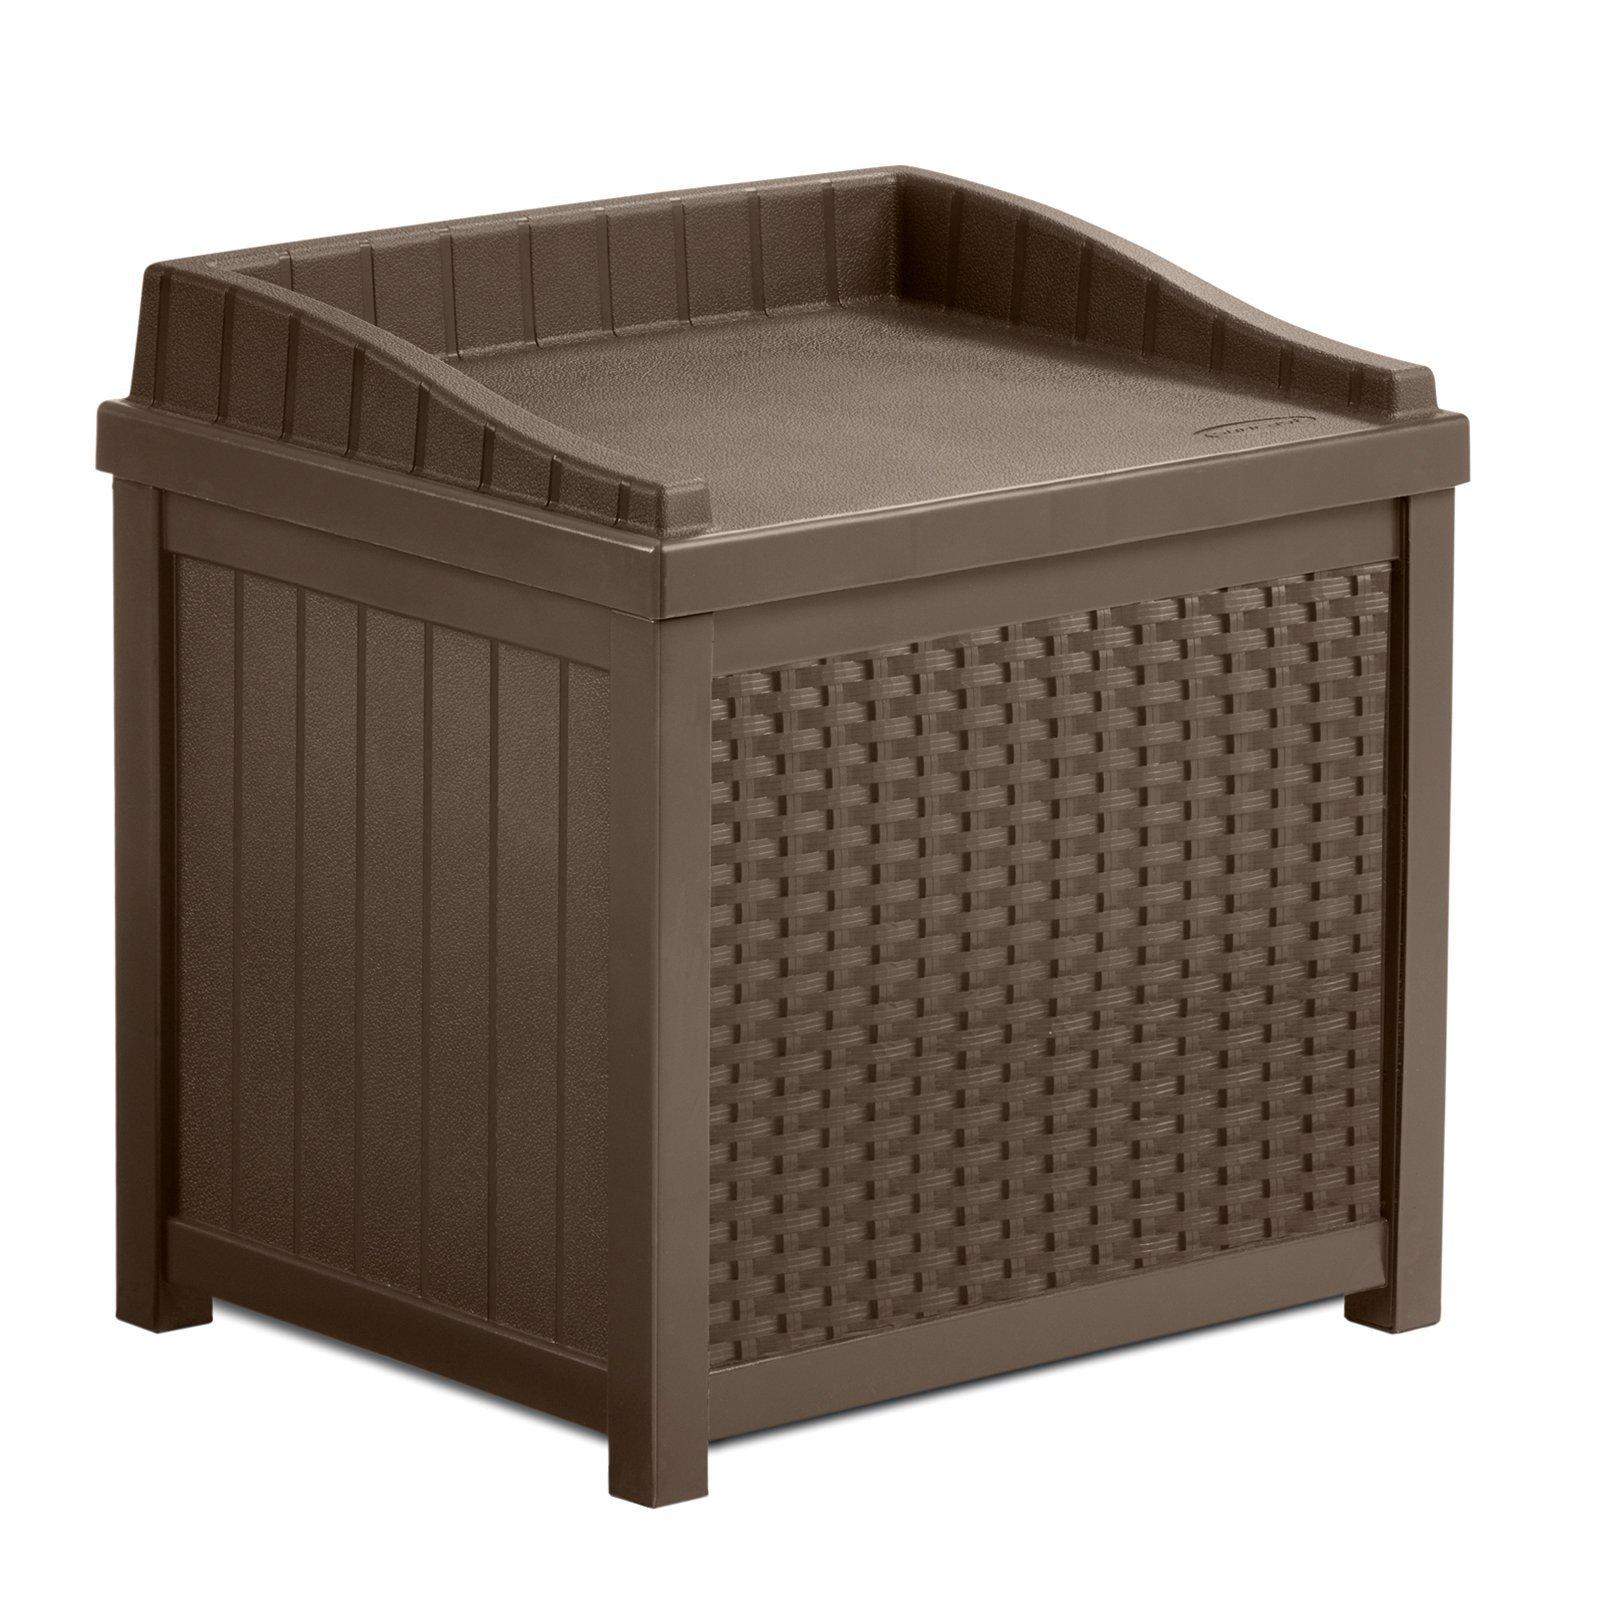 Stylish Outdoor Resin Small Storage Seat Deck Box, Contemporary Wicker Design, Long-Lasting Resin Construction, Combines Seating And Storage Solutions, Large 22-Gallon Storage Capacity, Brown Finish